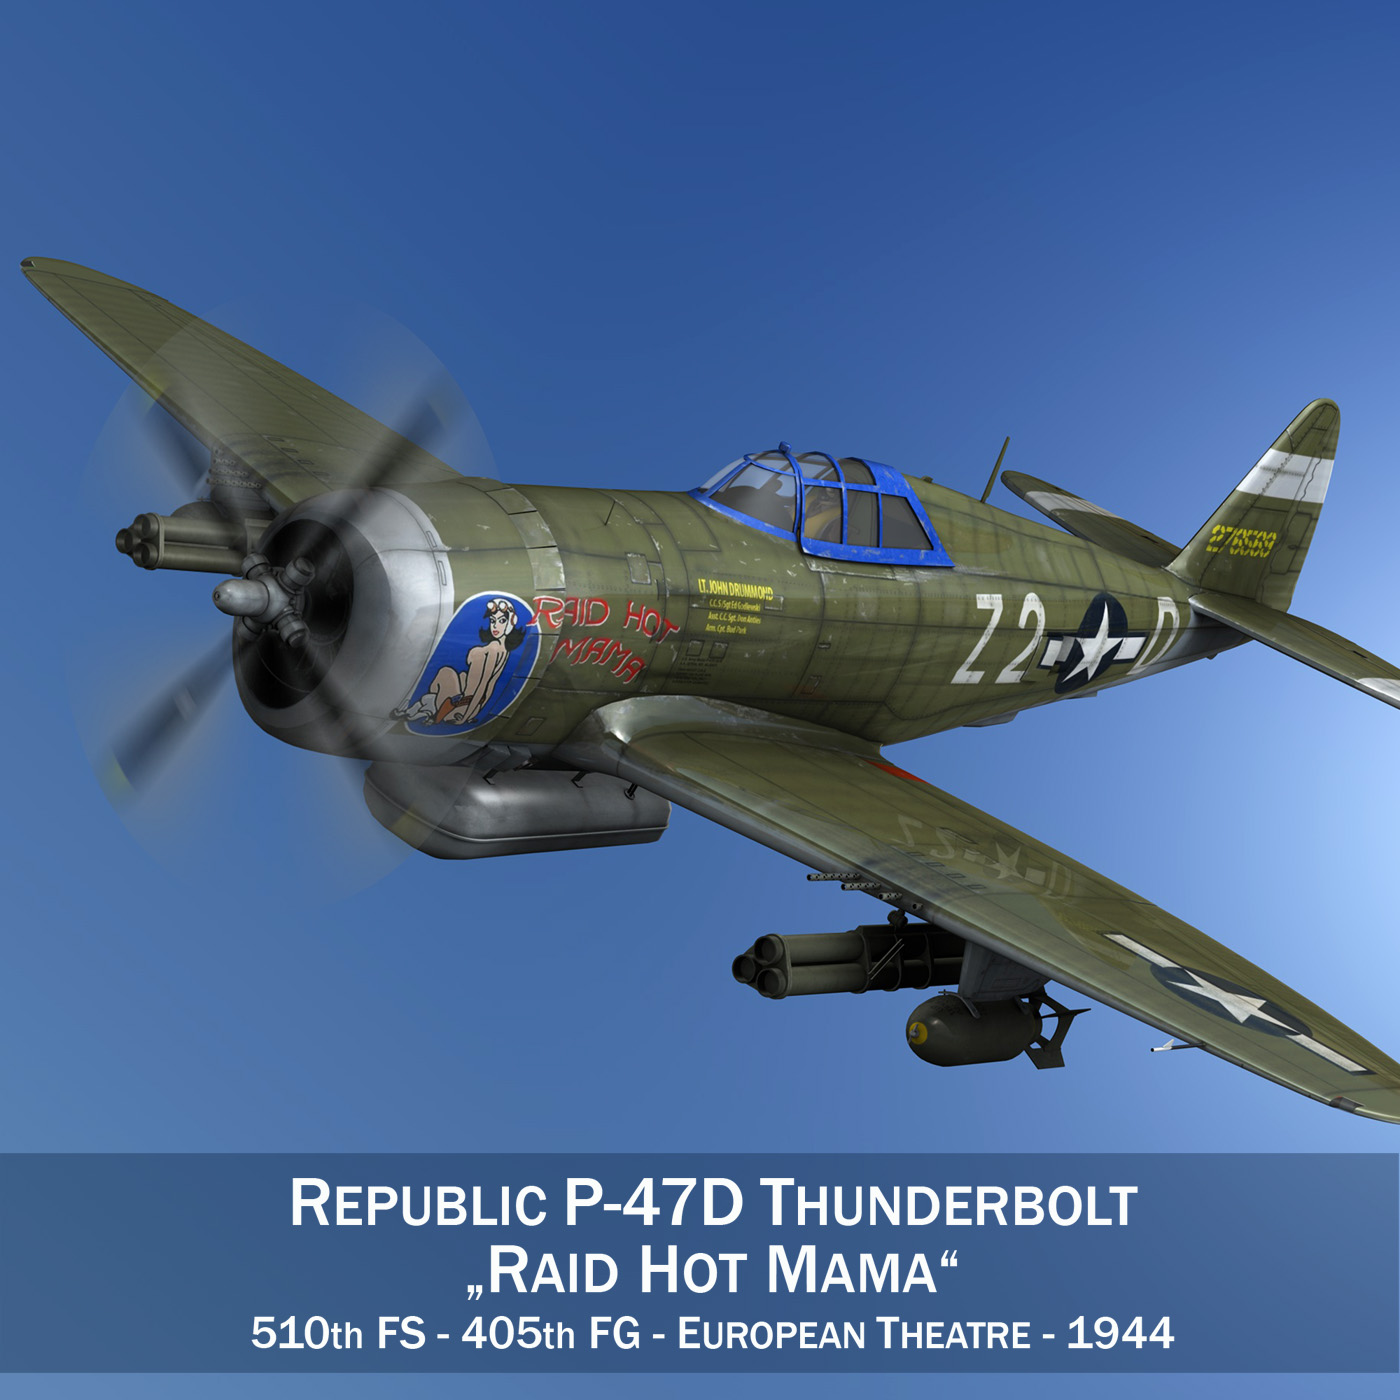 republic p-47d thunderbolt – raid hot mama 3d model 3ds c4d lwo obj 264311